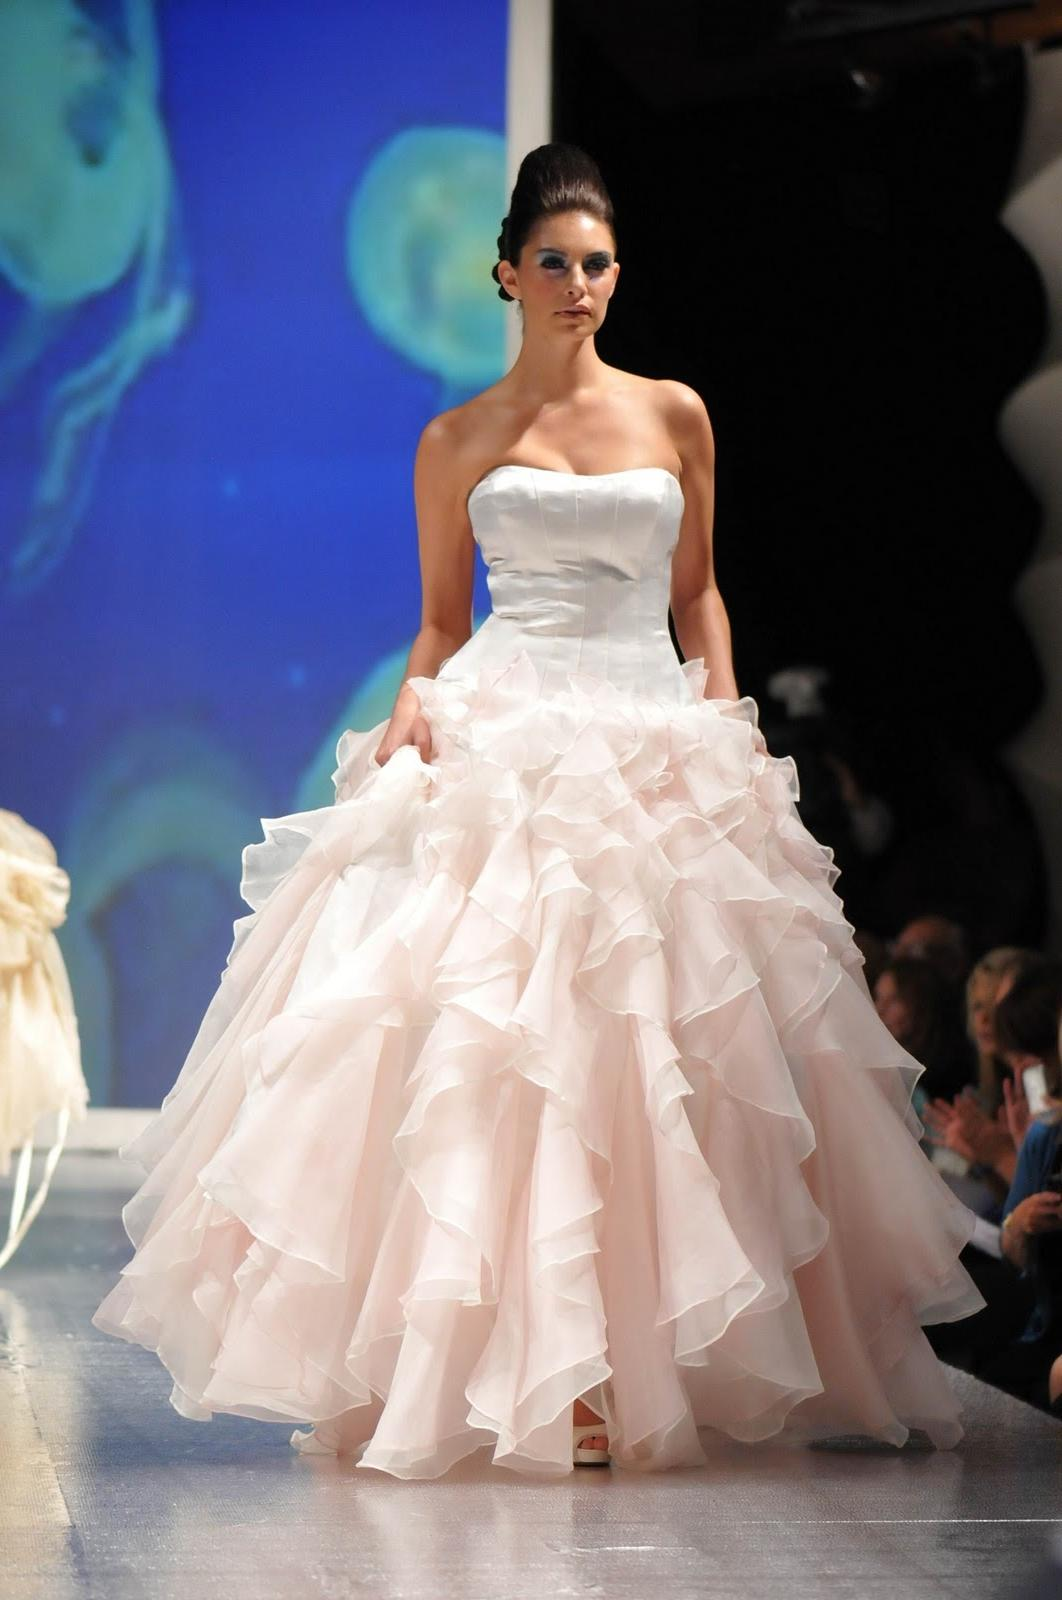 Strapless light pink ballgown